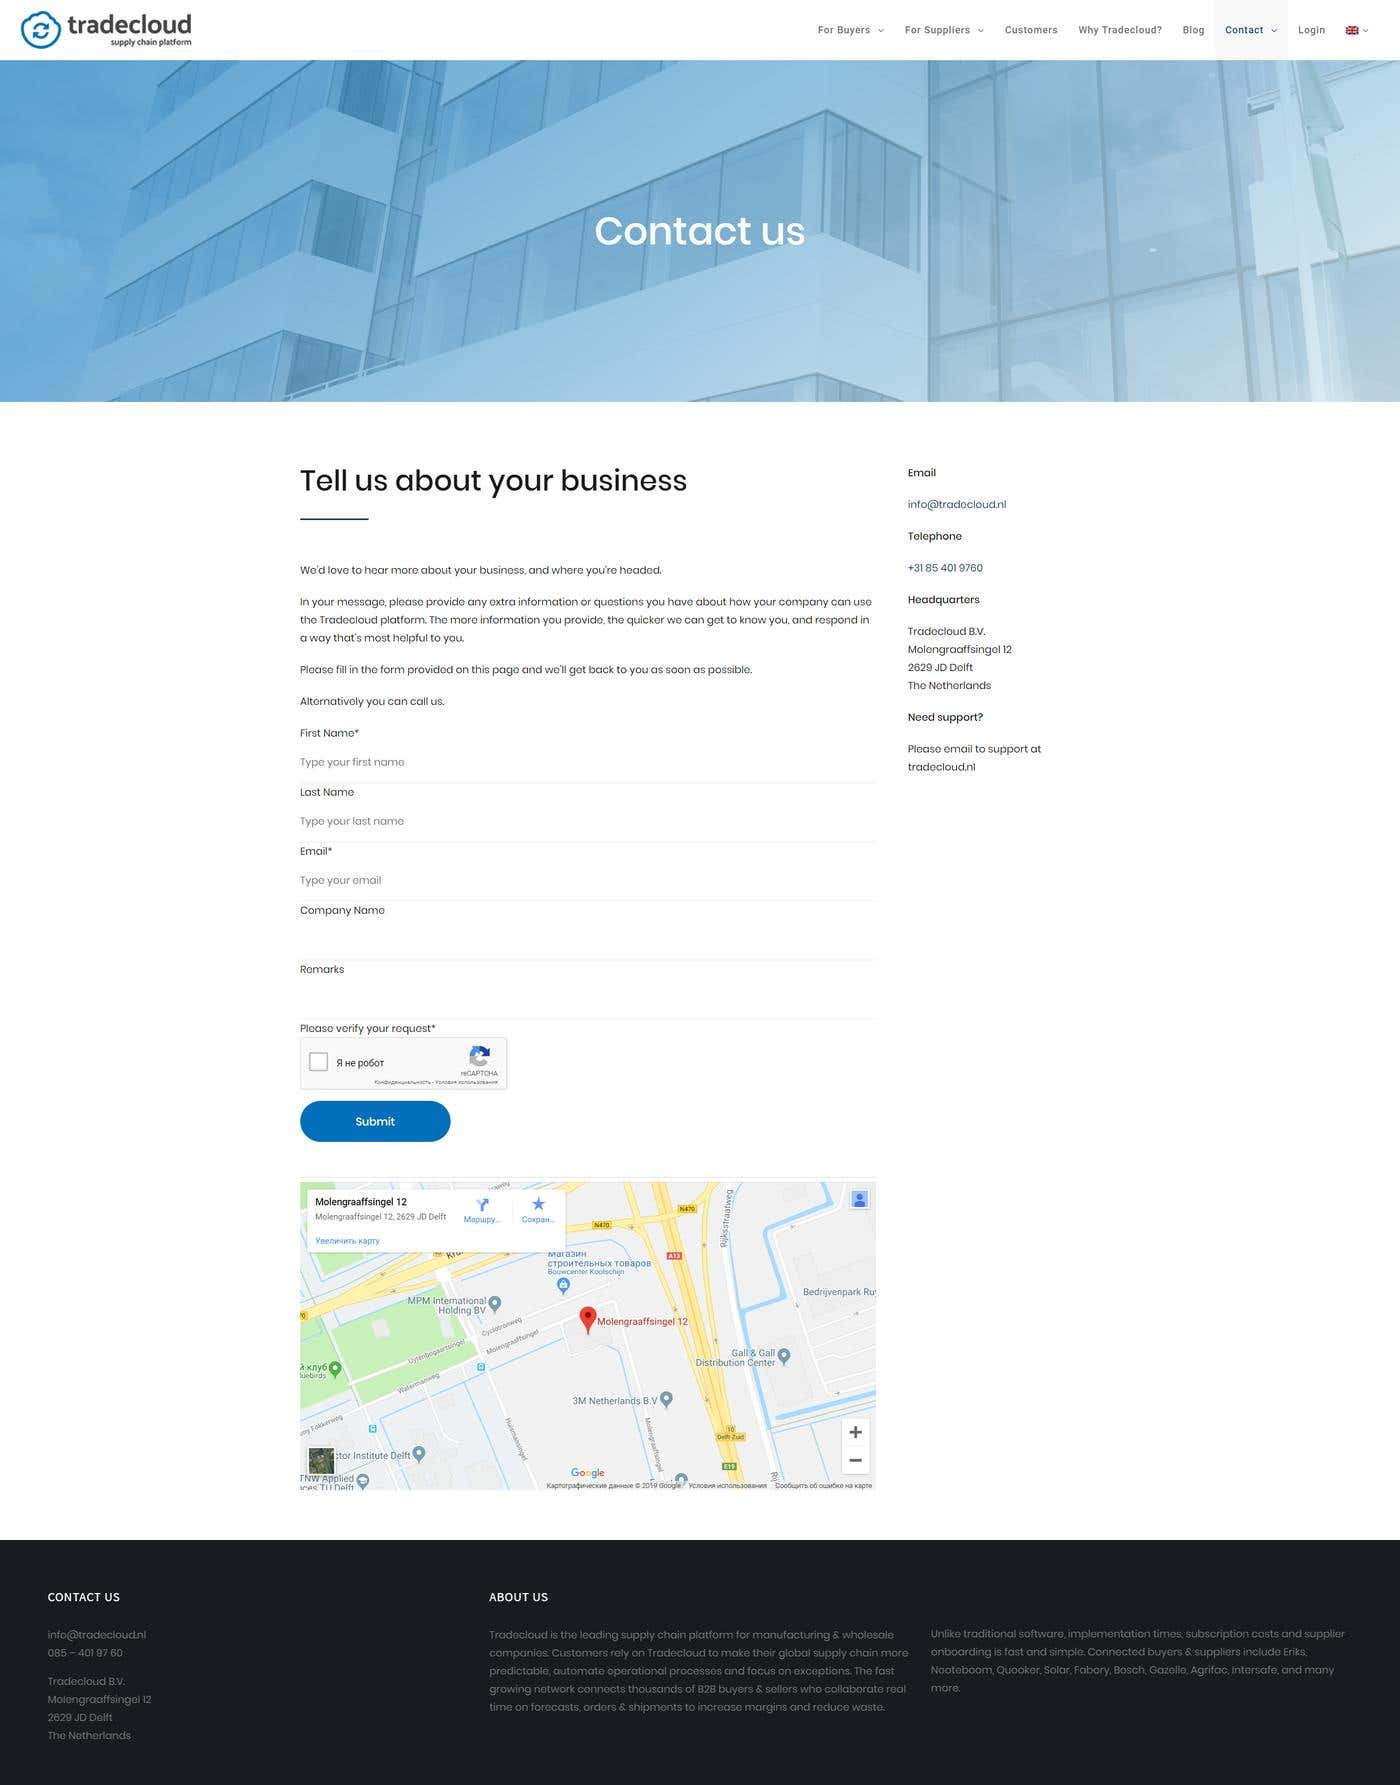 screencapture-tradecloud1-en-contact-2019-04-22-15_44_47.png